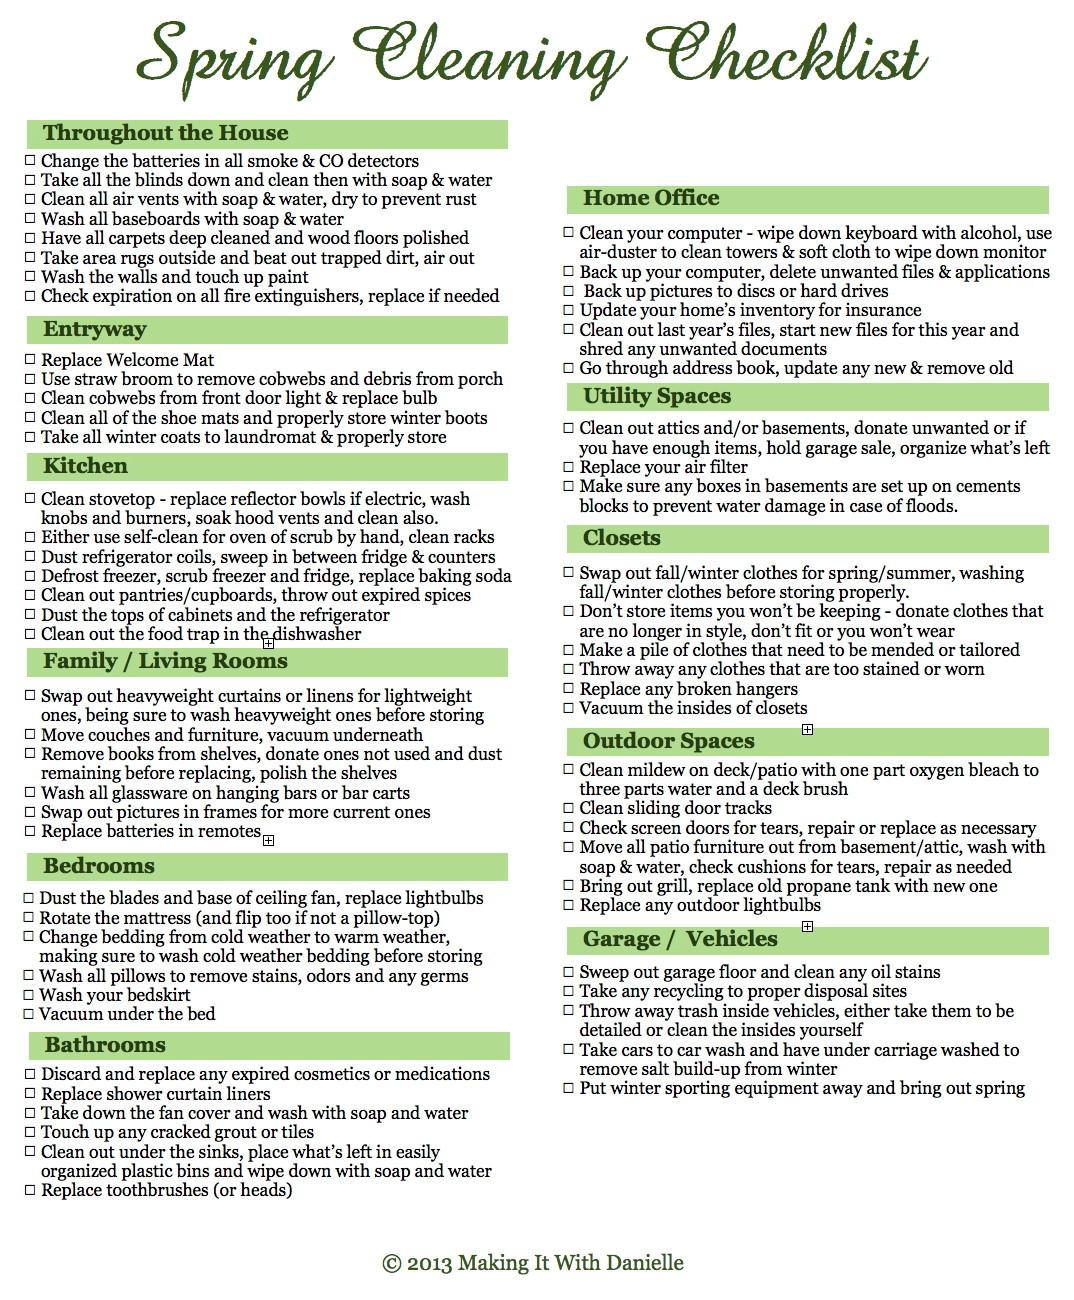 Spring Cleaning Checklist Tips